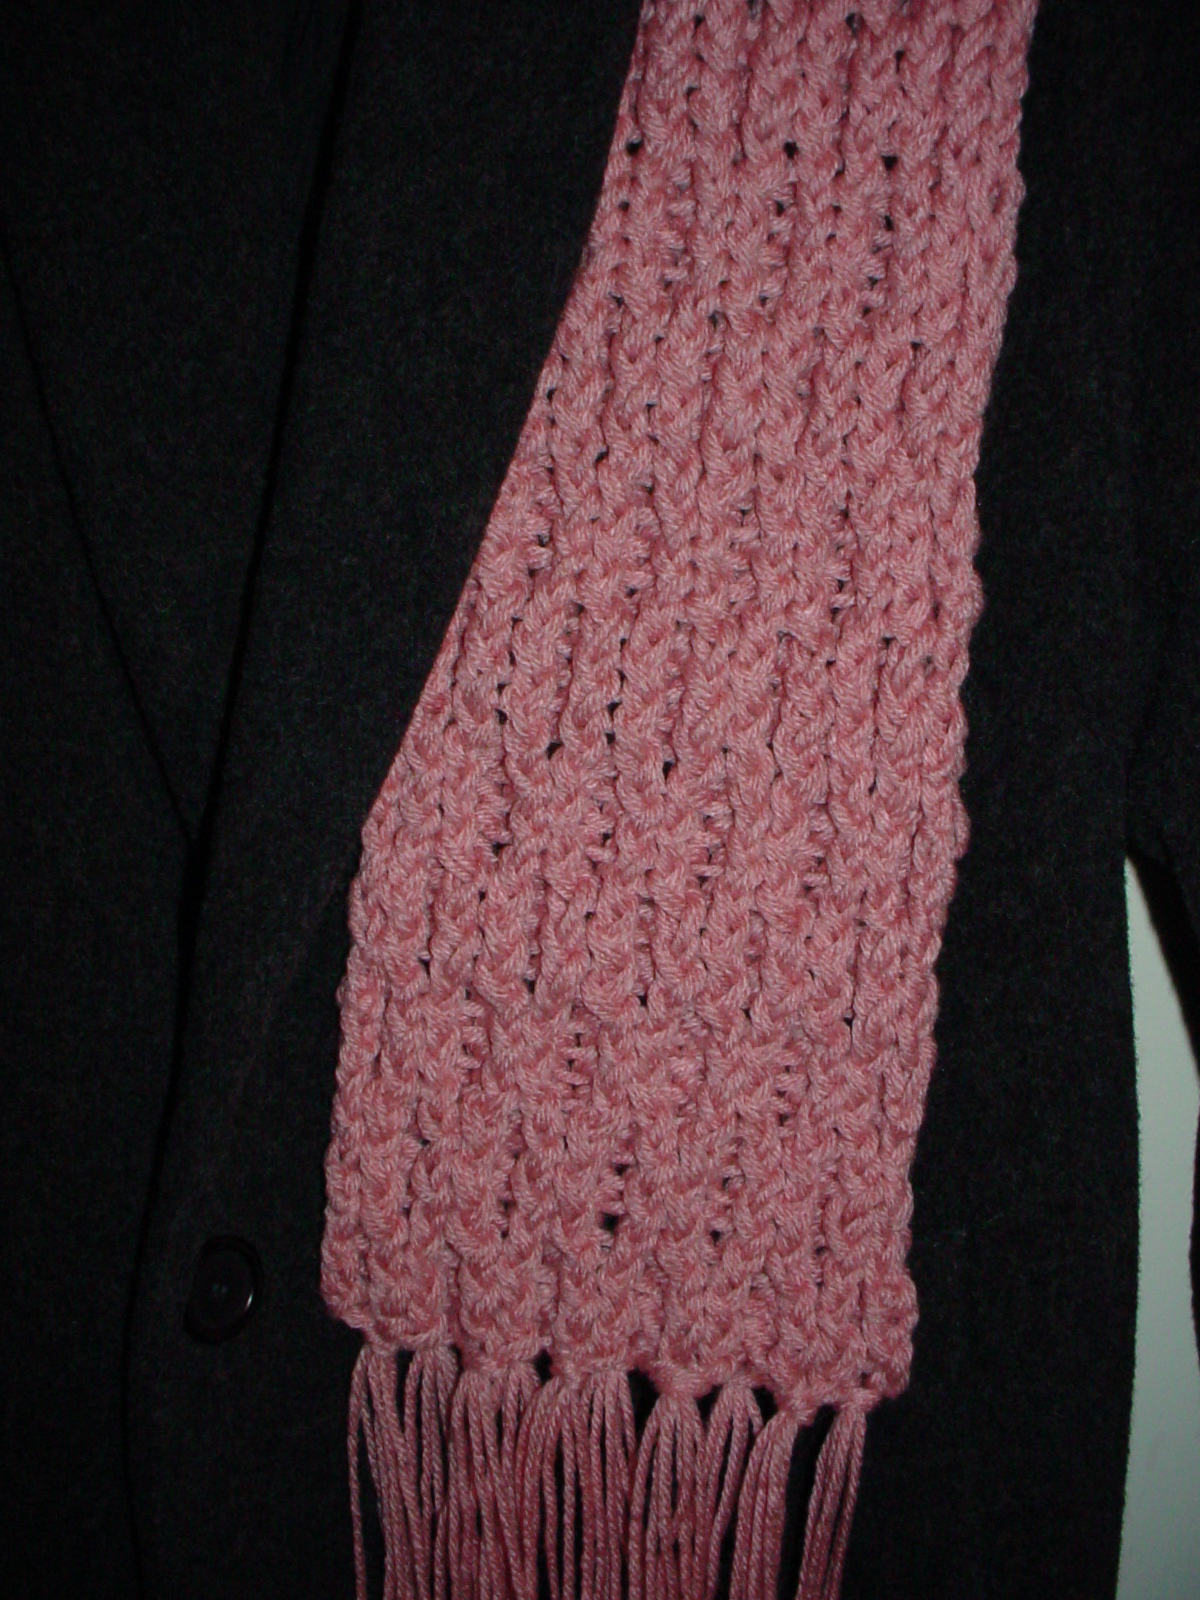 The Knifty Knitter: The Latest Knifty Knitter Project - Honeycomb Stitch Scarf